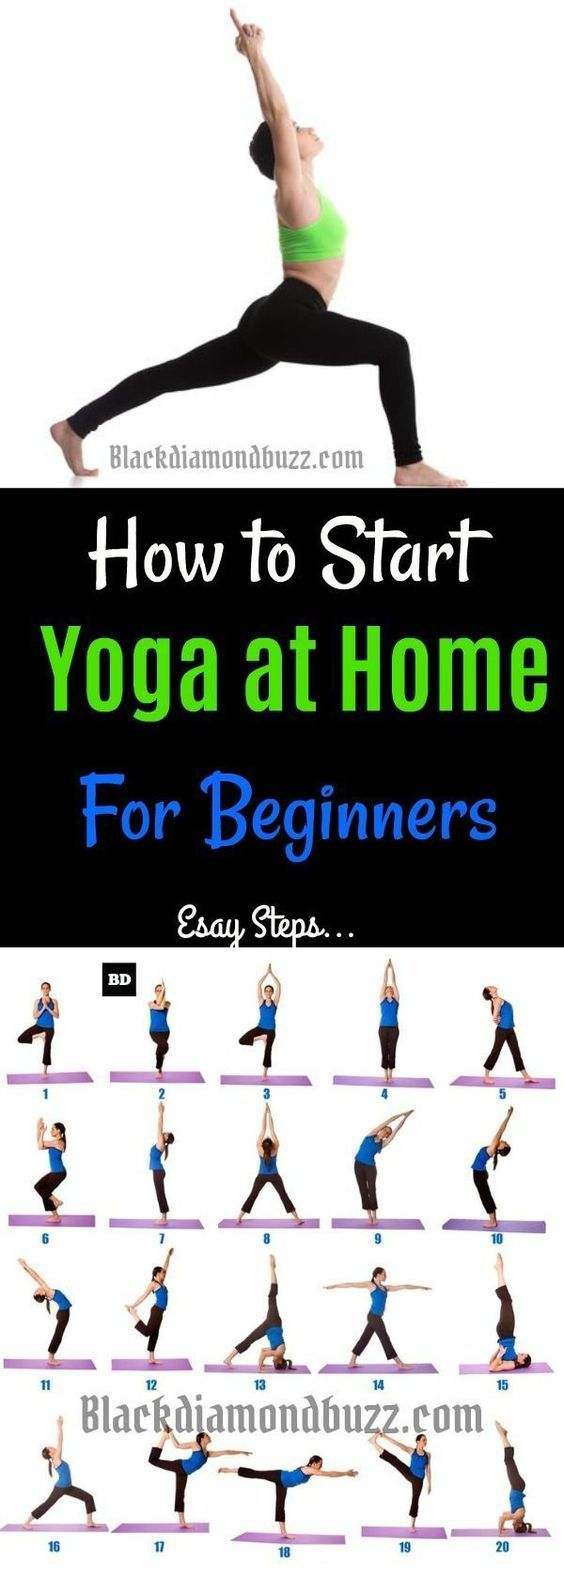 Yoga Poses 7 Easy Best Yoga Poses For Beginners And Back Stretches At Home You Can Even Do These Yoga Wo Easy Yoga Workouts How To Start Yoga Cool Yoga Poses